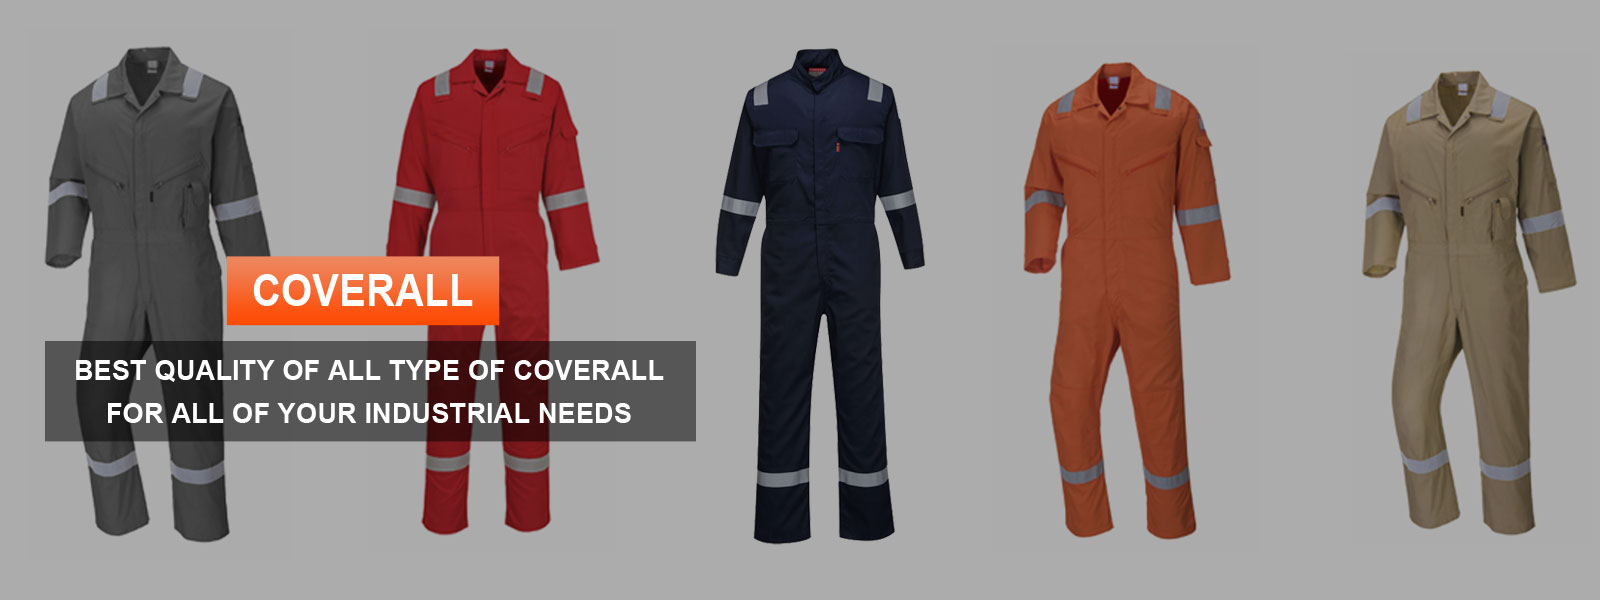 Coverall Manufacturers in Algeria